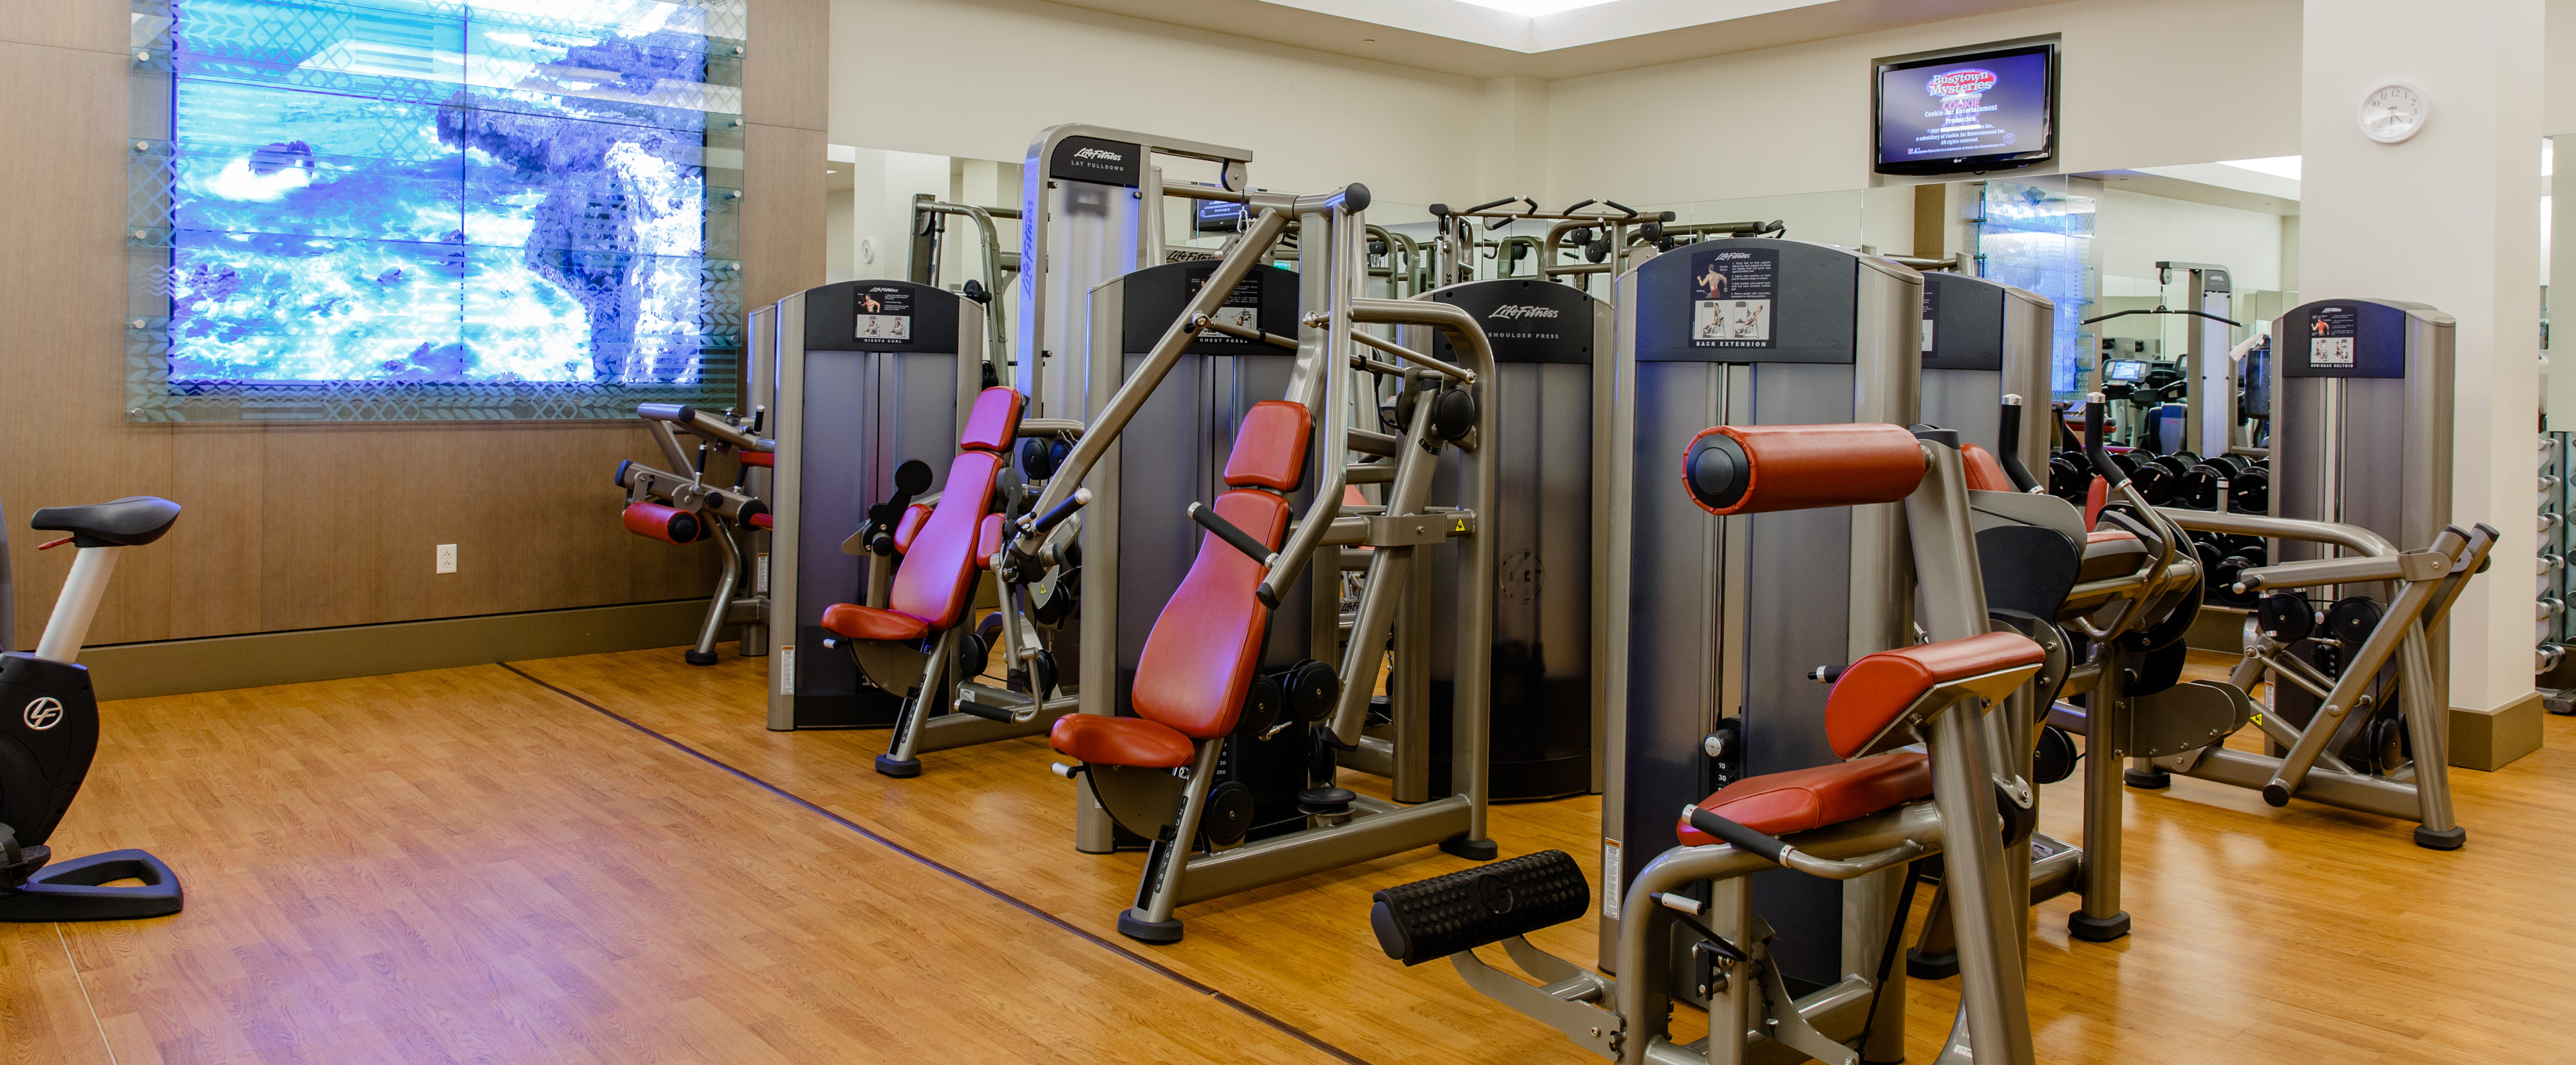 Various Life Fitness resistance machines in a corner area below a wall-mounted TV